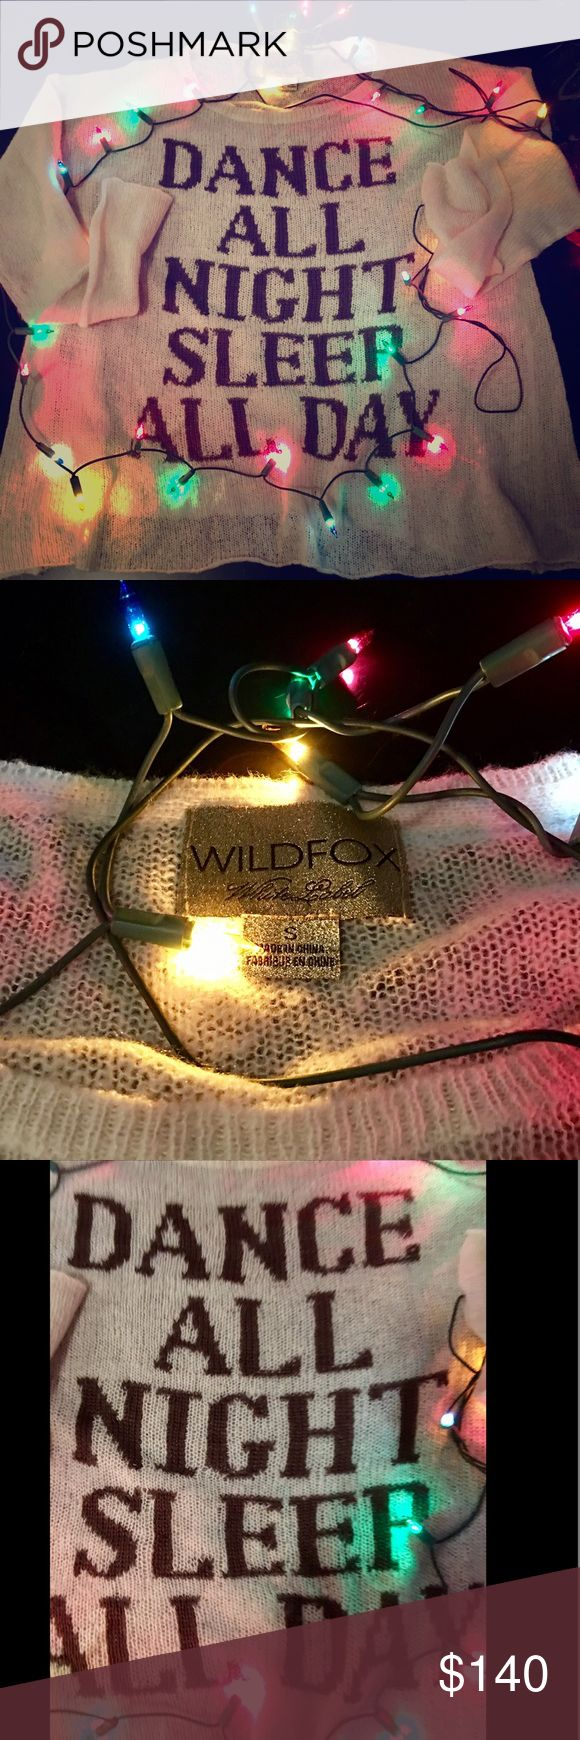 👱🏼♀️WILDFOX WHITE LABEL PFEIFFER SZ S👱🏼♀️ WILDFOX 'DANCE ALL NIGHT, SLEEP ALL DAY' PFEIFFER, LONG SLEEVED, SIZE SMALL SWEATER. SCOOP NECK & OVERSIZED & ALSO VERY SOFT & A LIGHT, COMFY PIECE! RETAIL PRICE WAS 249.00 + TAX LAST YEAR WHEN I BOUGHT IT. THIS IS A WILDFOX 'WHITE LABEL SHIRT THAT IS HTF. WILL CONSIDER ALL OFFERS & CHEAPER THROUGH 🅿️🅿️! QUESTIONS, ASK AWAY & THANKS FOR LOOKING.👀 *NO TRADES, I NEED A HATCHIMAL LOL😳 Wildfox Sweaters Crew & Scoop Necks